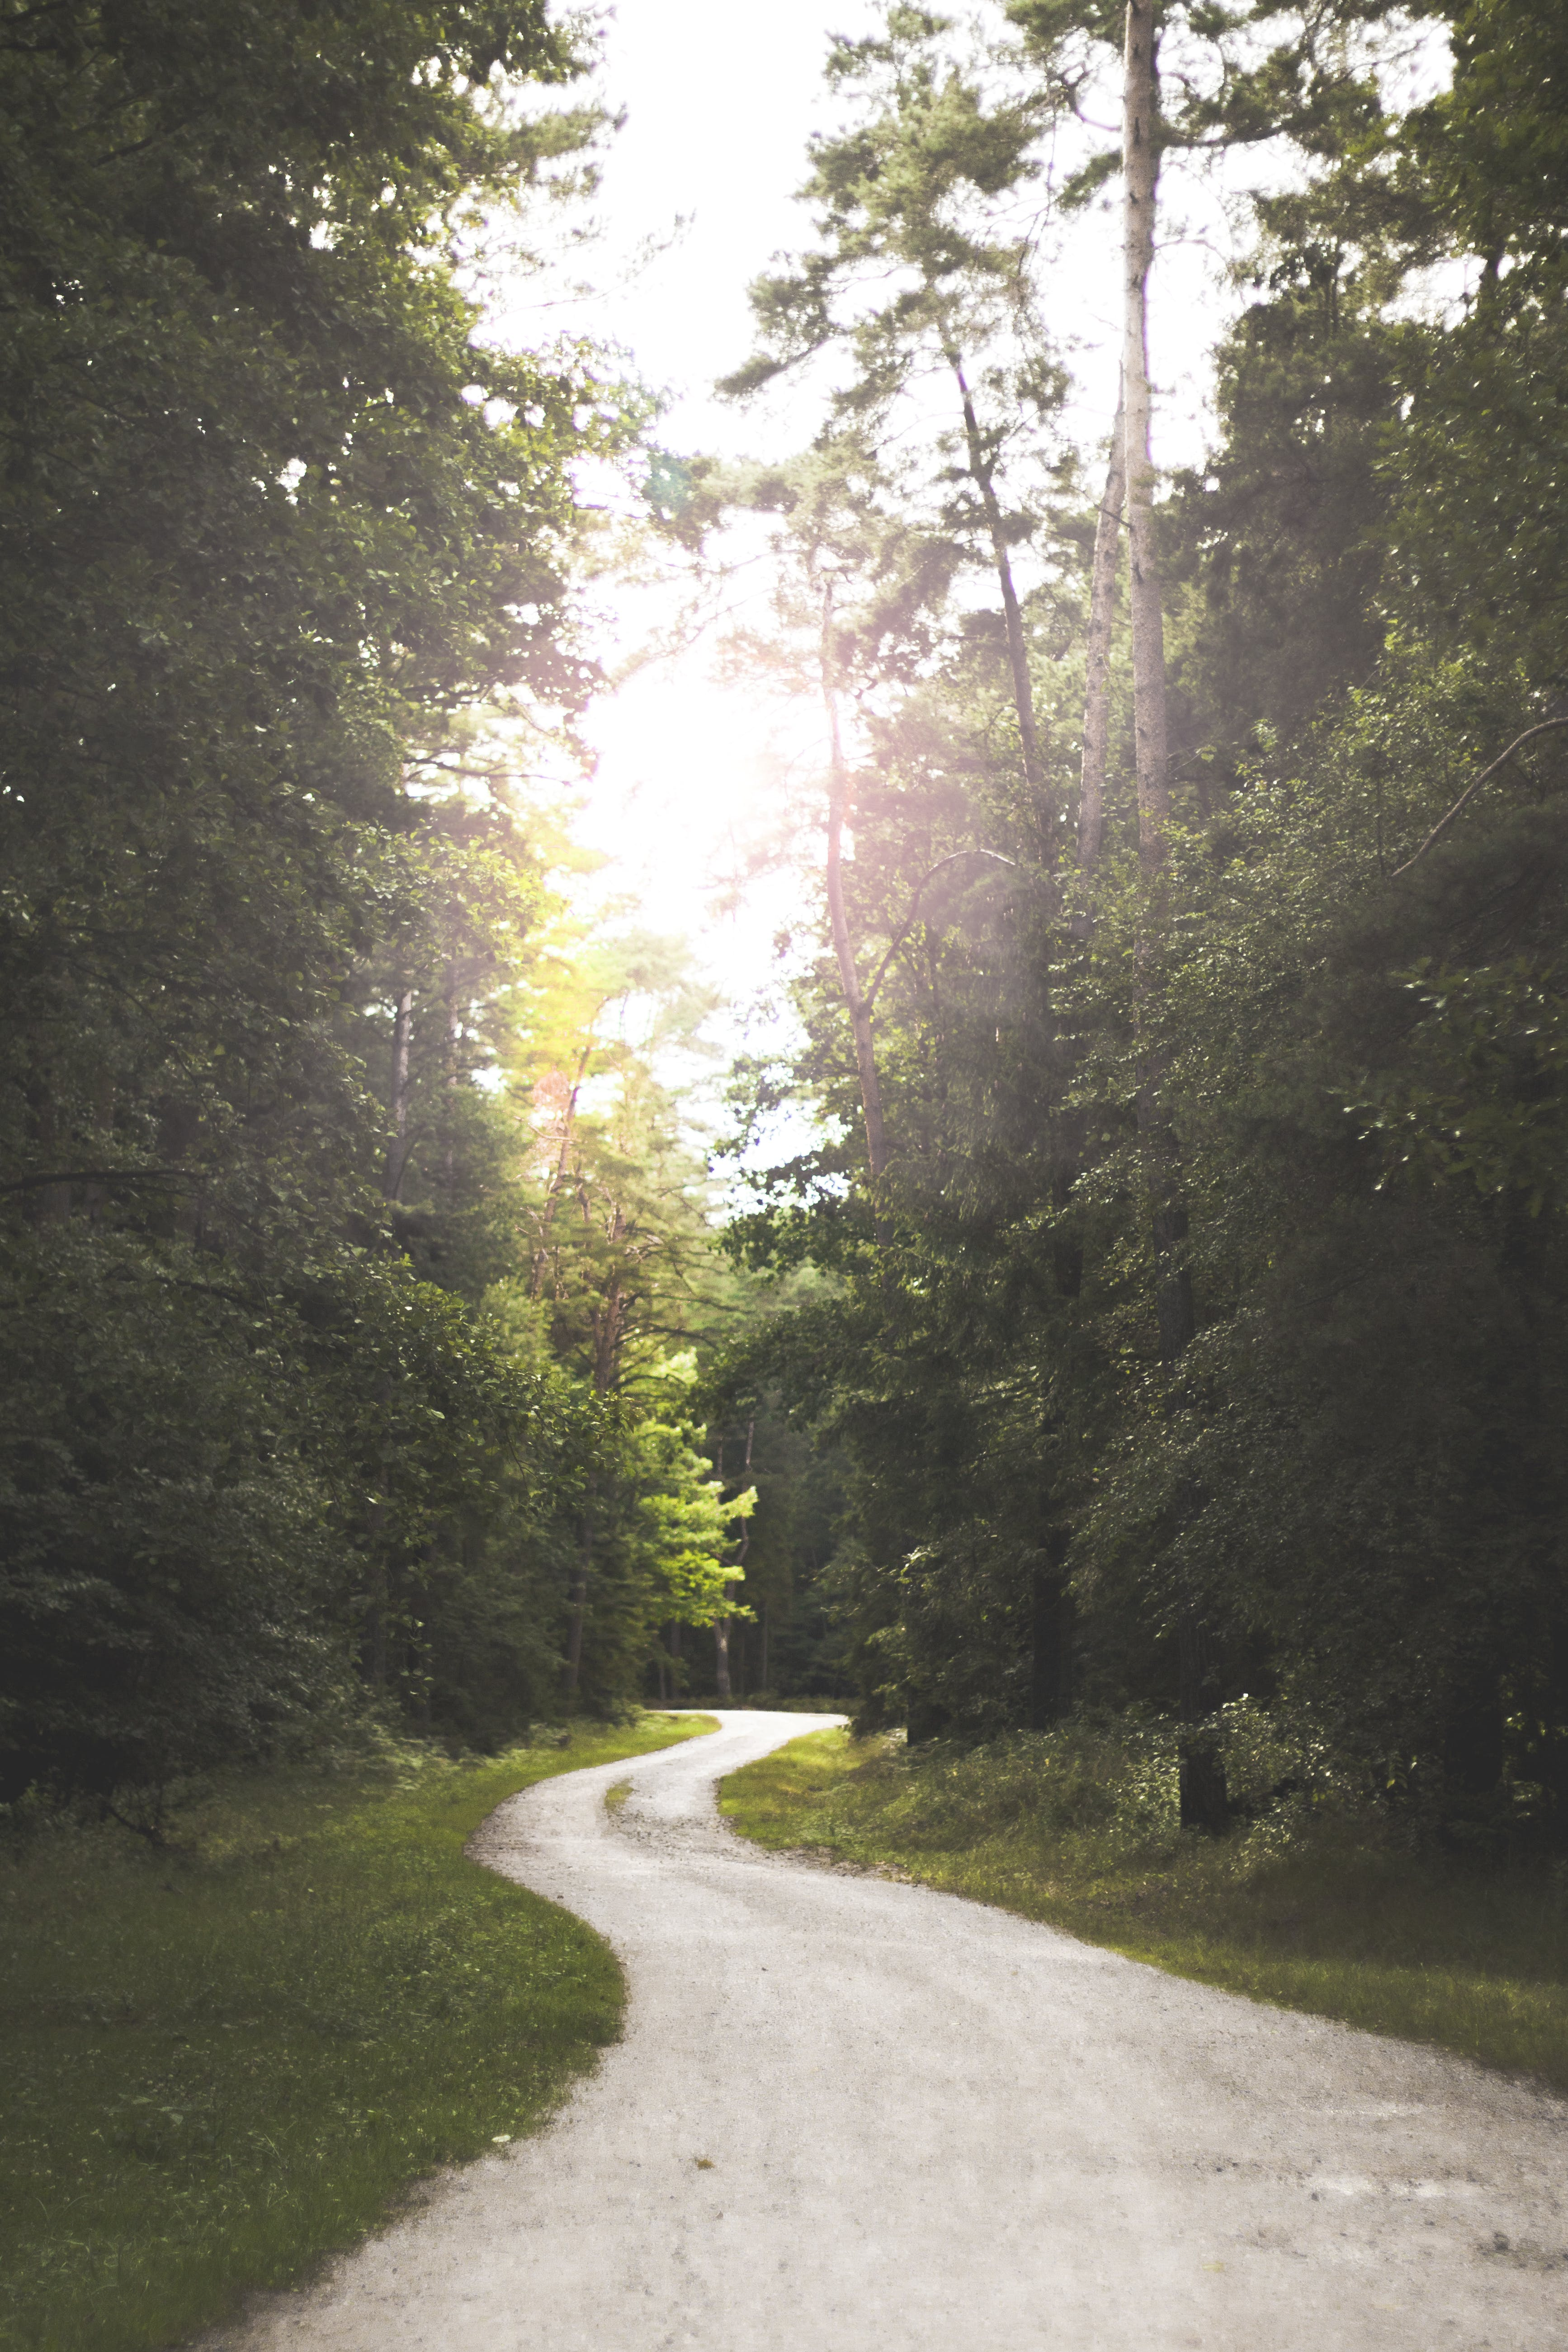 Winding Road Near Forest